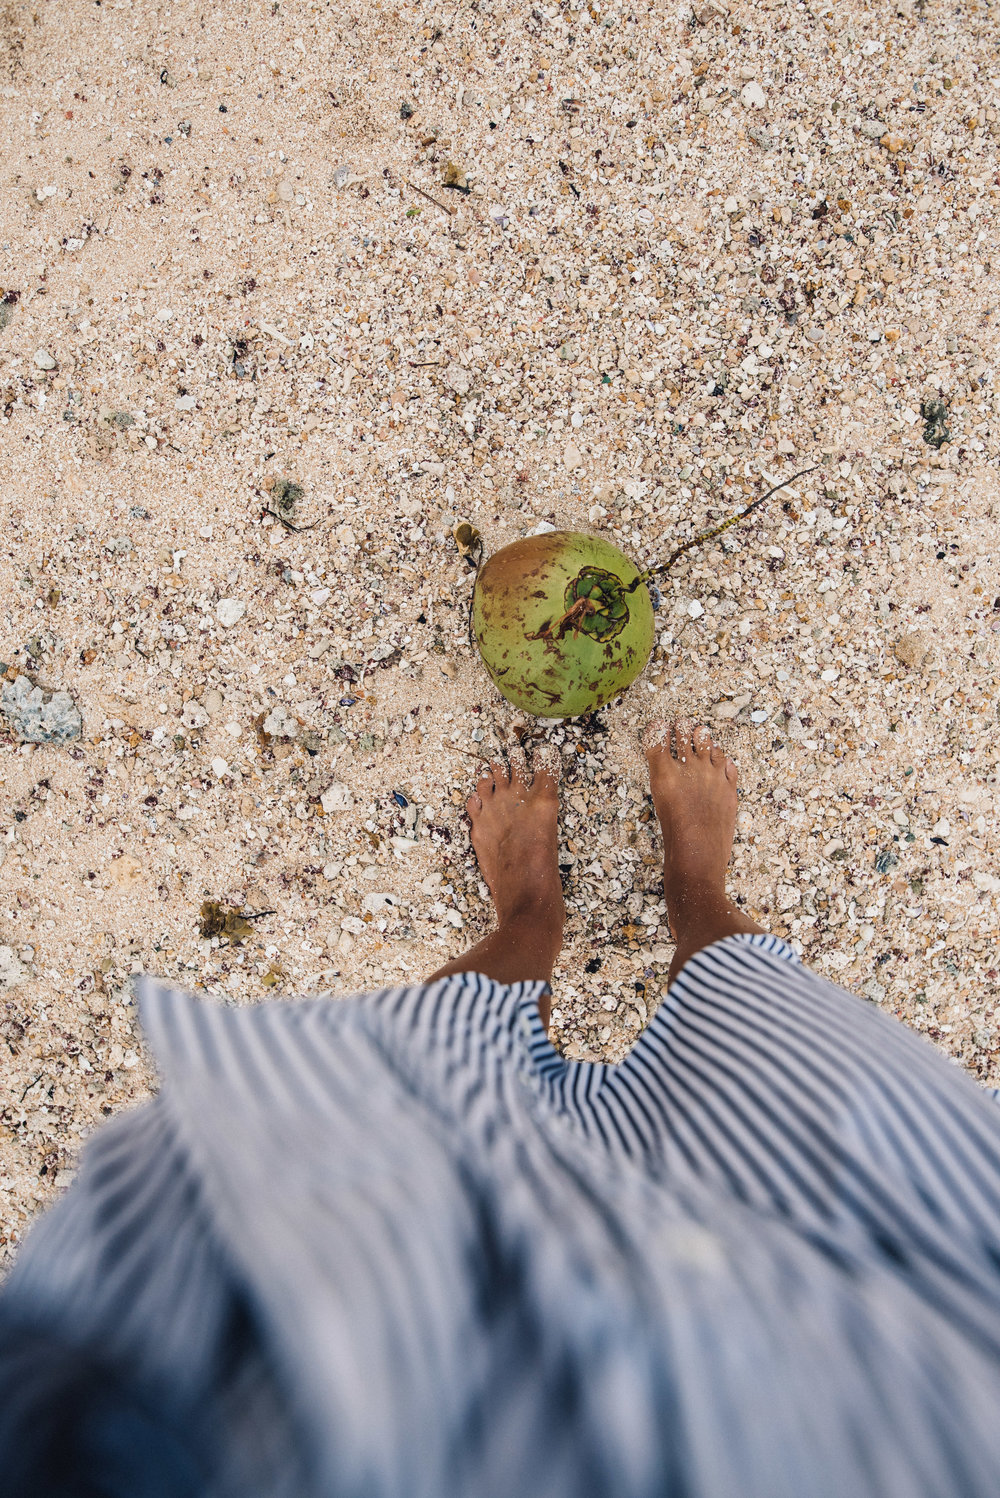 Coconuts on the beaches of Siargao